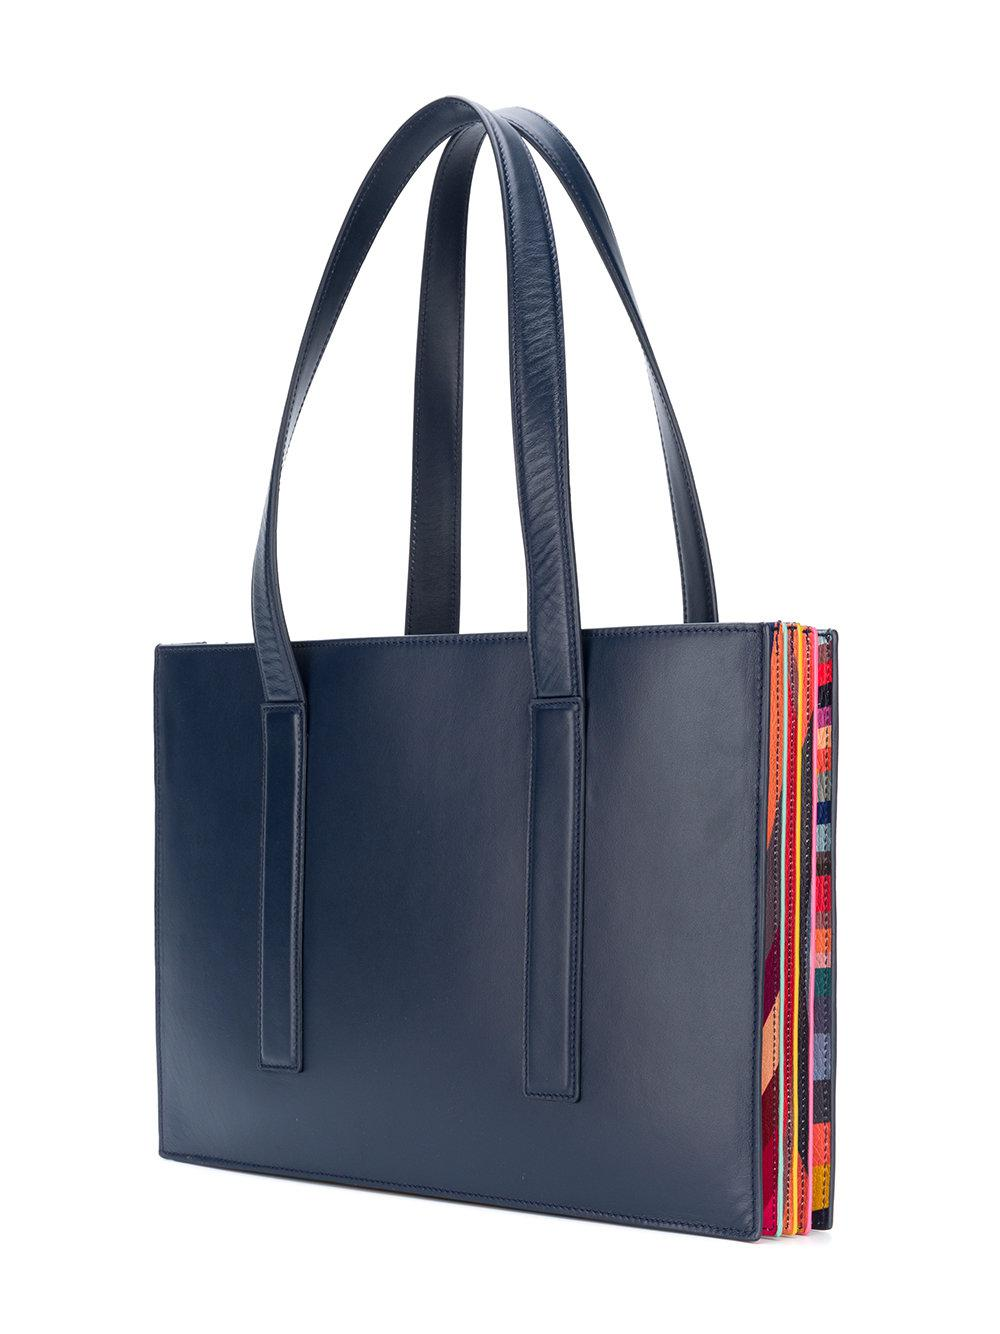 Paul Smith Leather Concertina Swirl Small Tote Bag in Blue